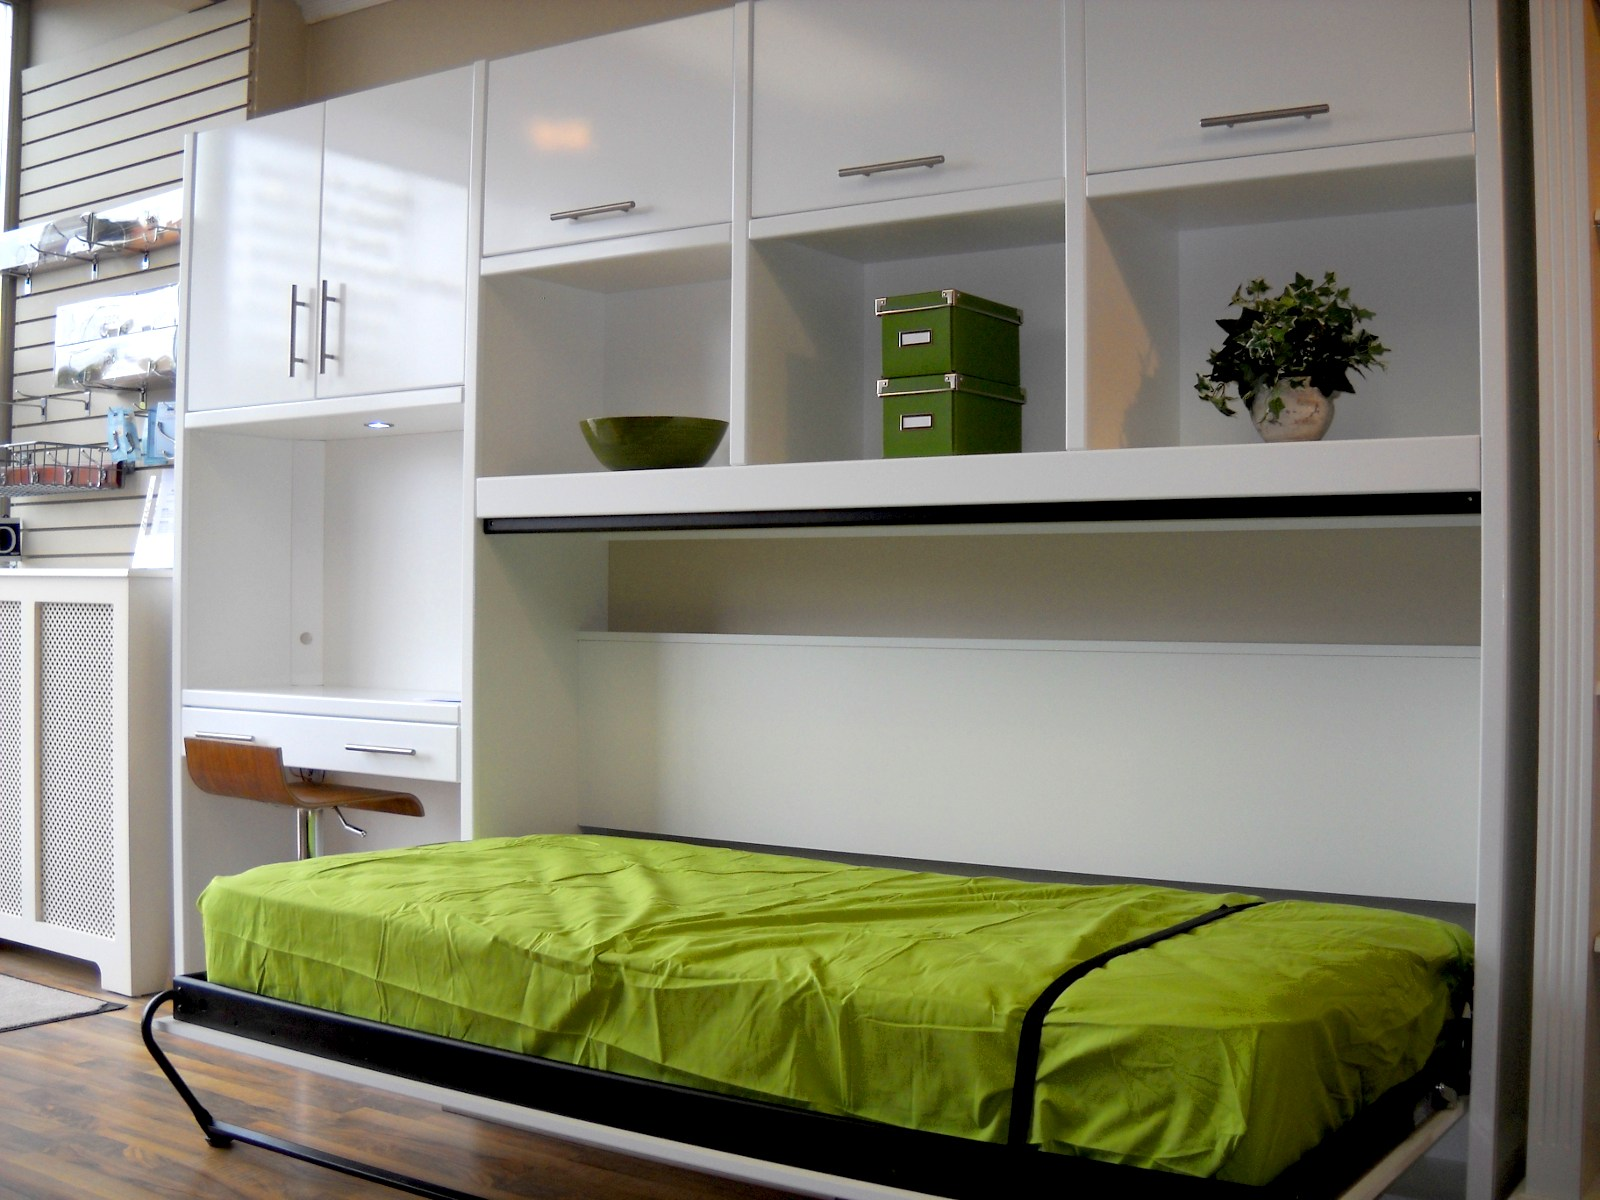 Green Mattress Folded Bed Unit With Mini Desk And Single Cabinet On The Left